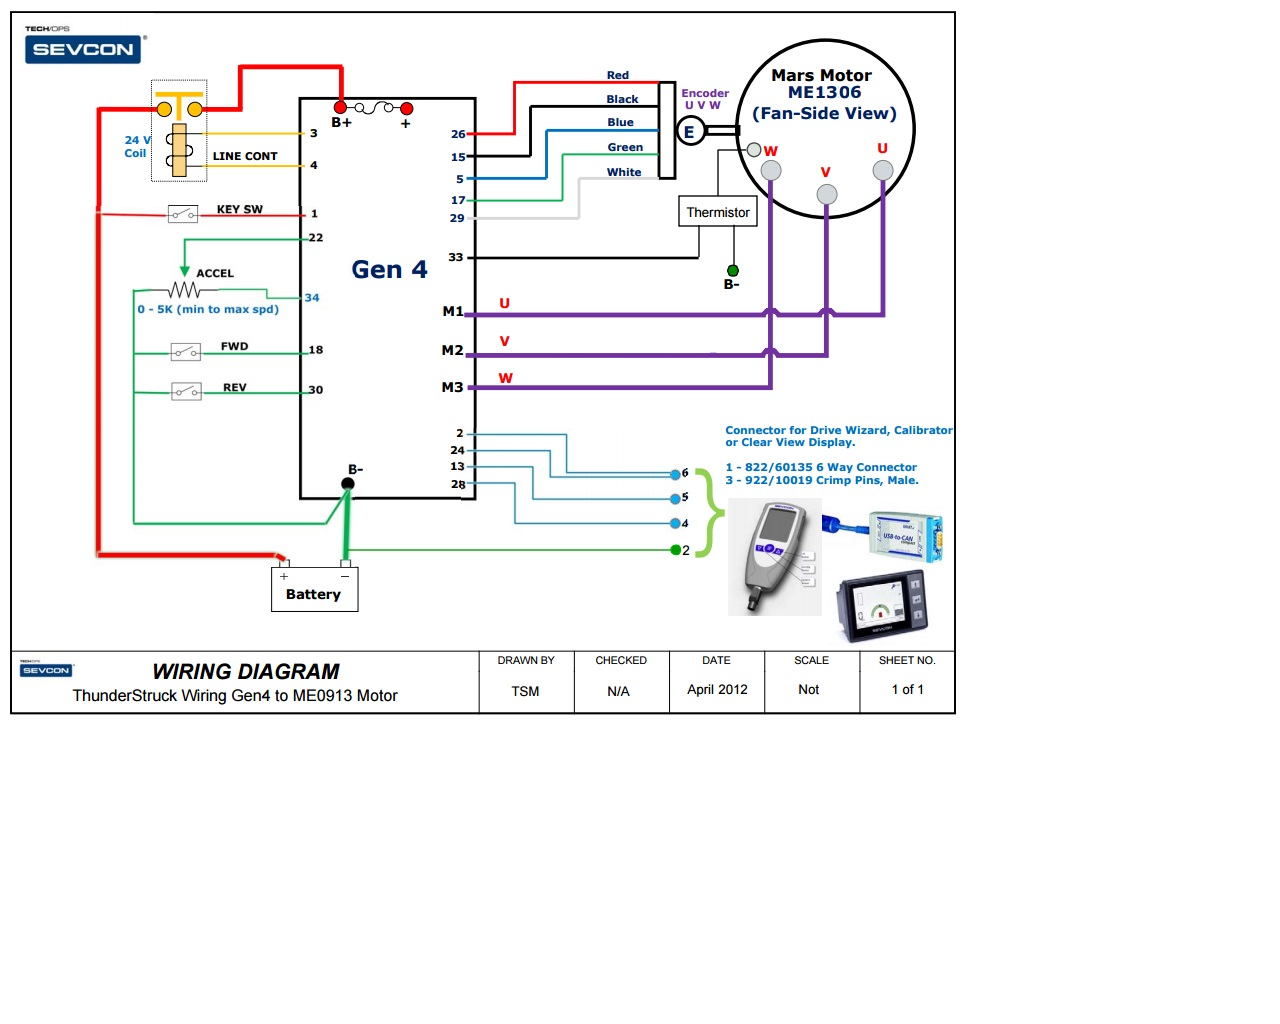 172091 together with Basic Motor Control Wiring Diagram further Best Bathroom Design Rules in addition Ev Hev Charger further Mars Transformer Wiring Diagram. on fan center wiring